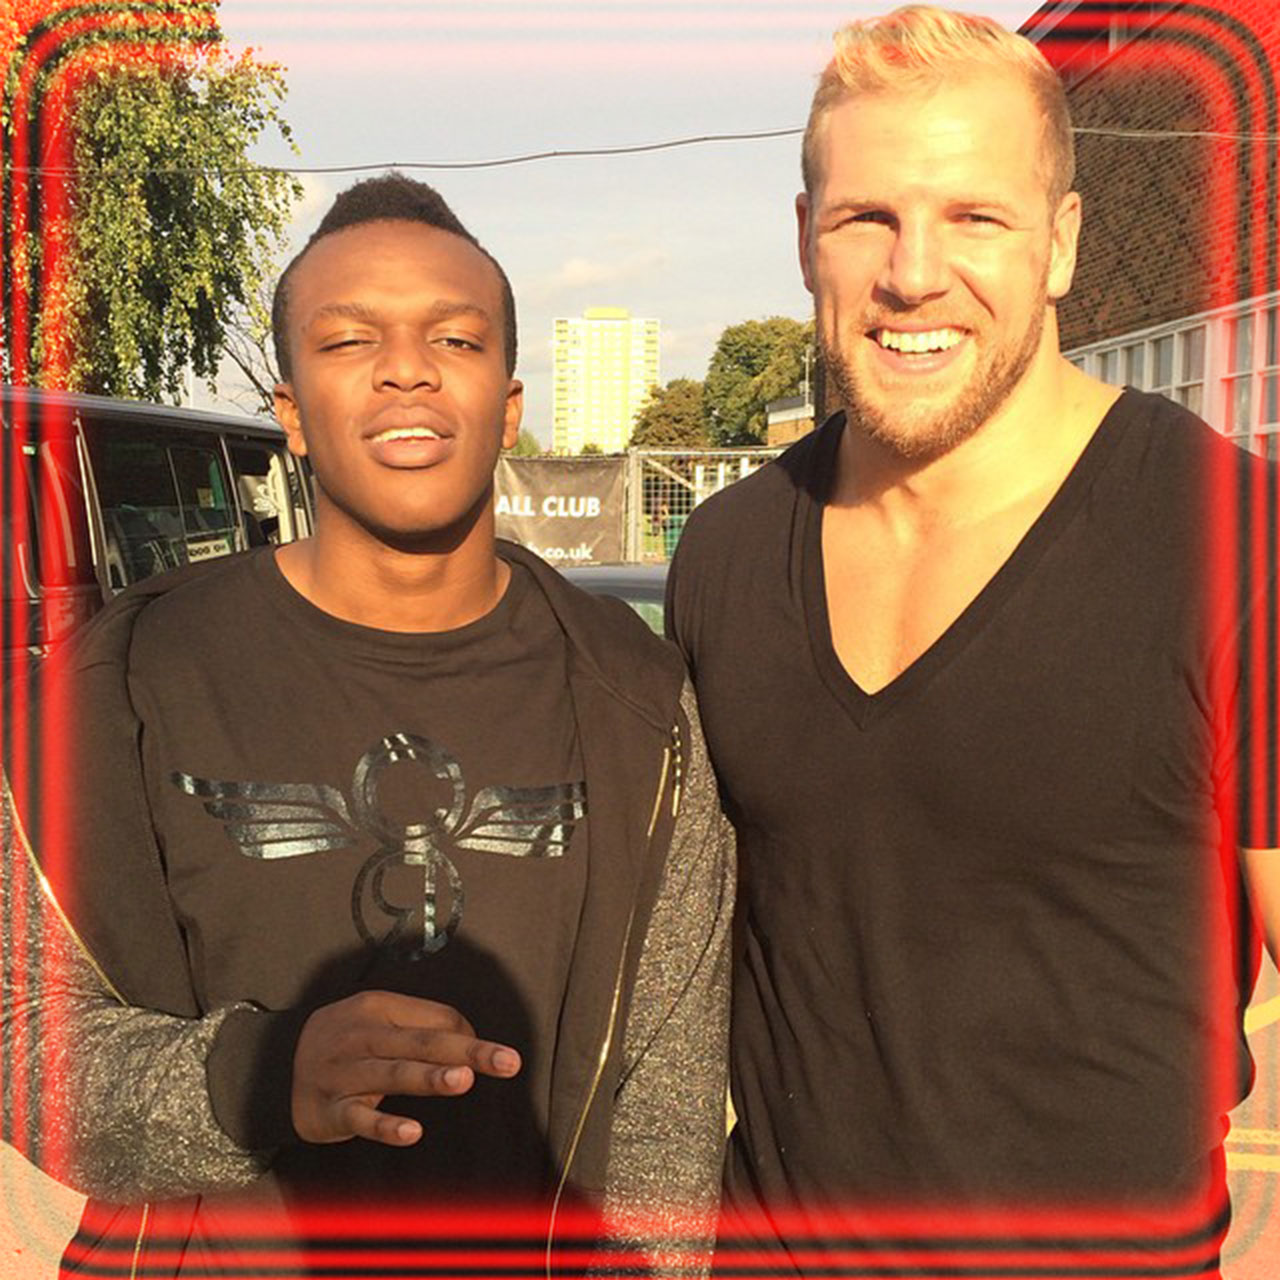 KSI gets trained in rugby by London Wasps flanker James Haskell